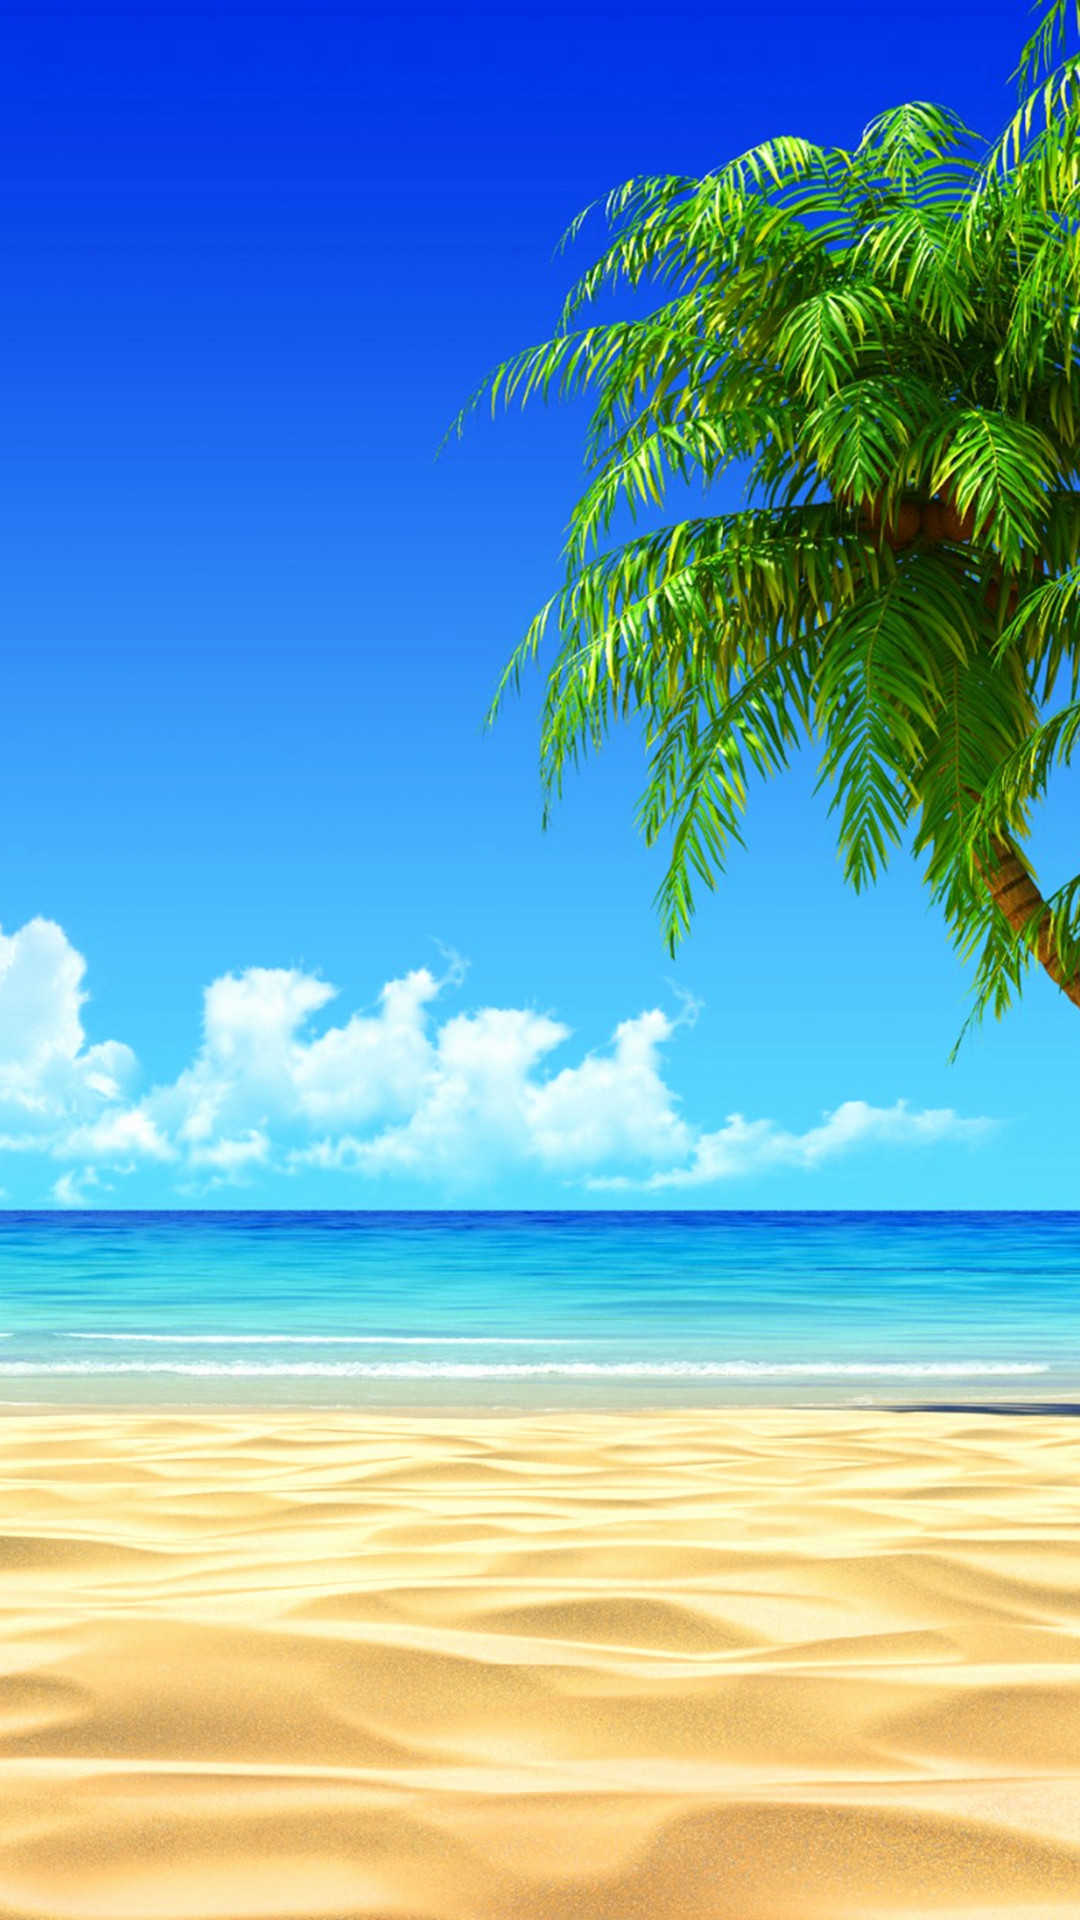 tropical wallpaper hd beautiful tropical wallpaper desktop ·① wallpapertag of the day